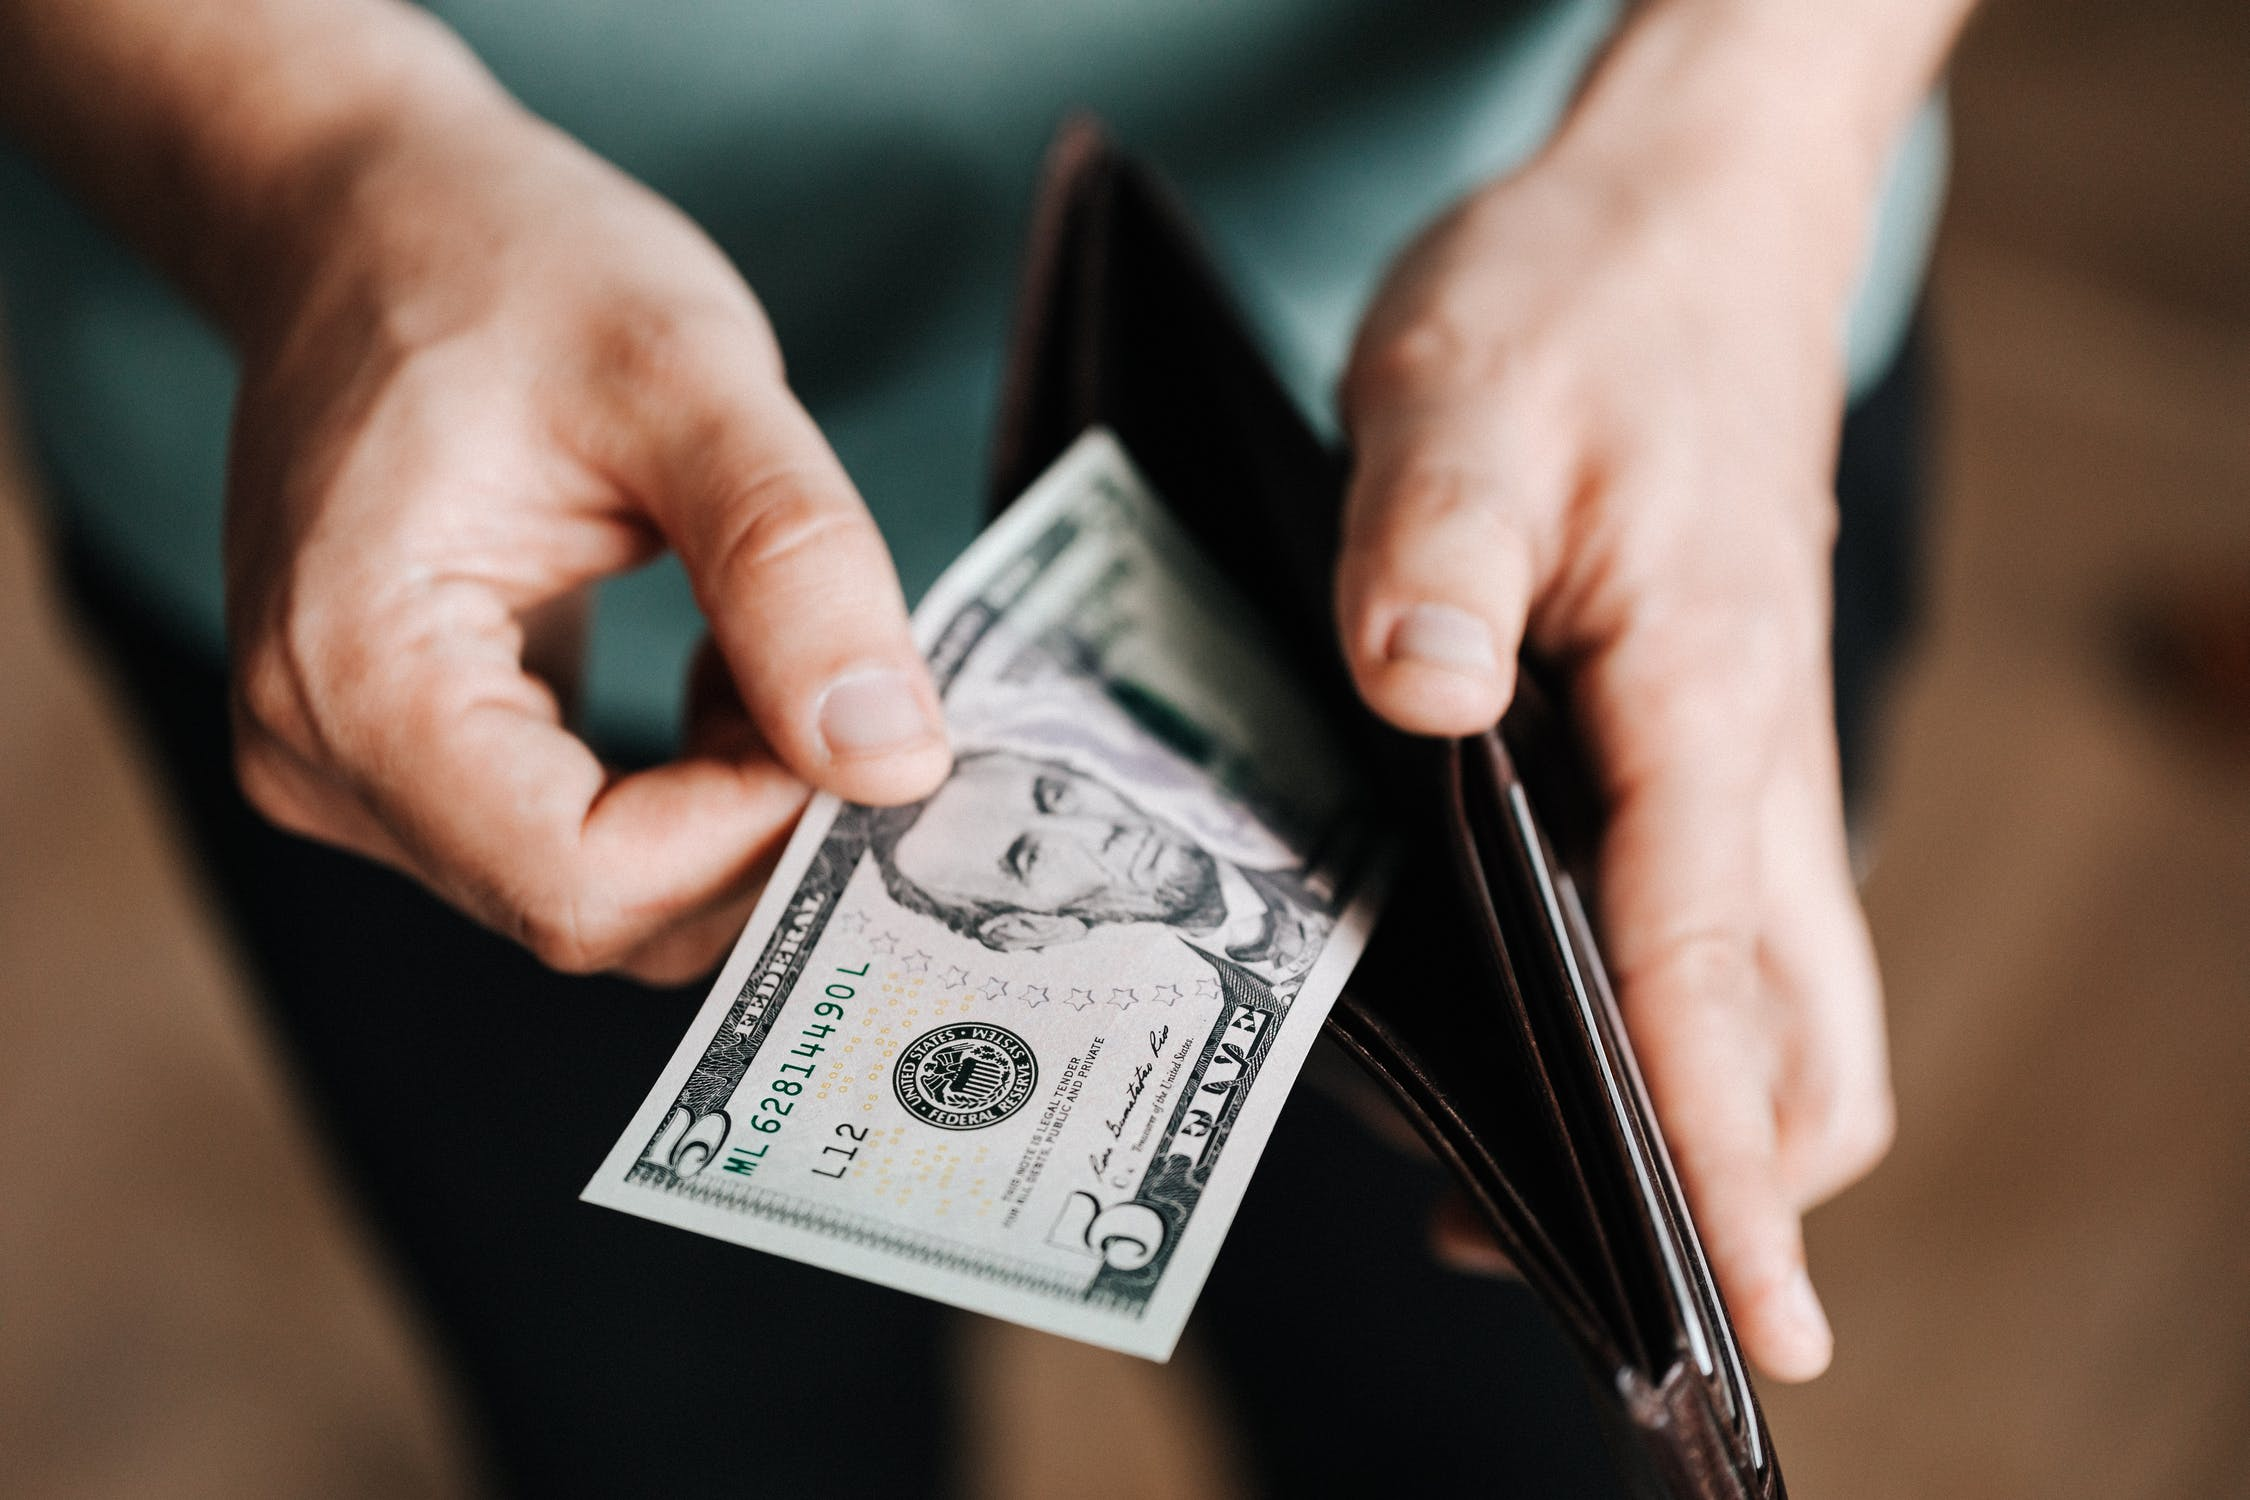 The shocking truth about honesty - Someone found a wallet with money inside, what do you think they will do? Put on iLost or keep? People are more honest than you might think.